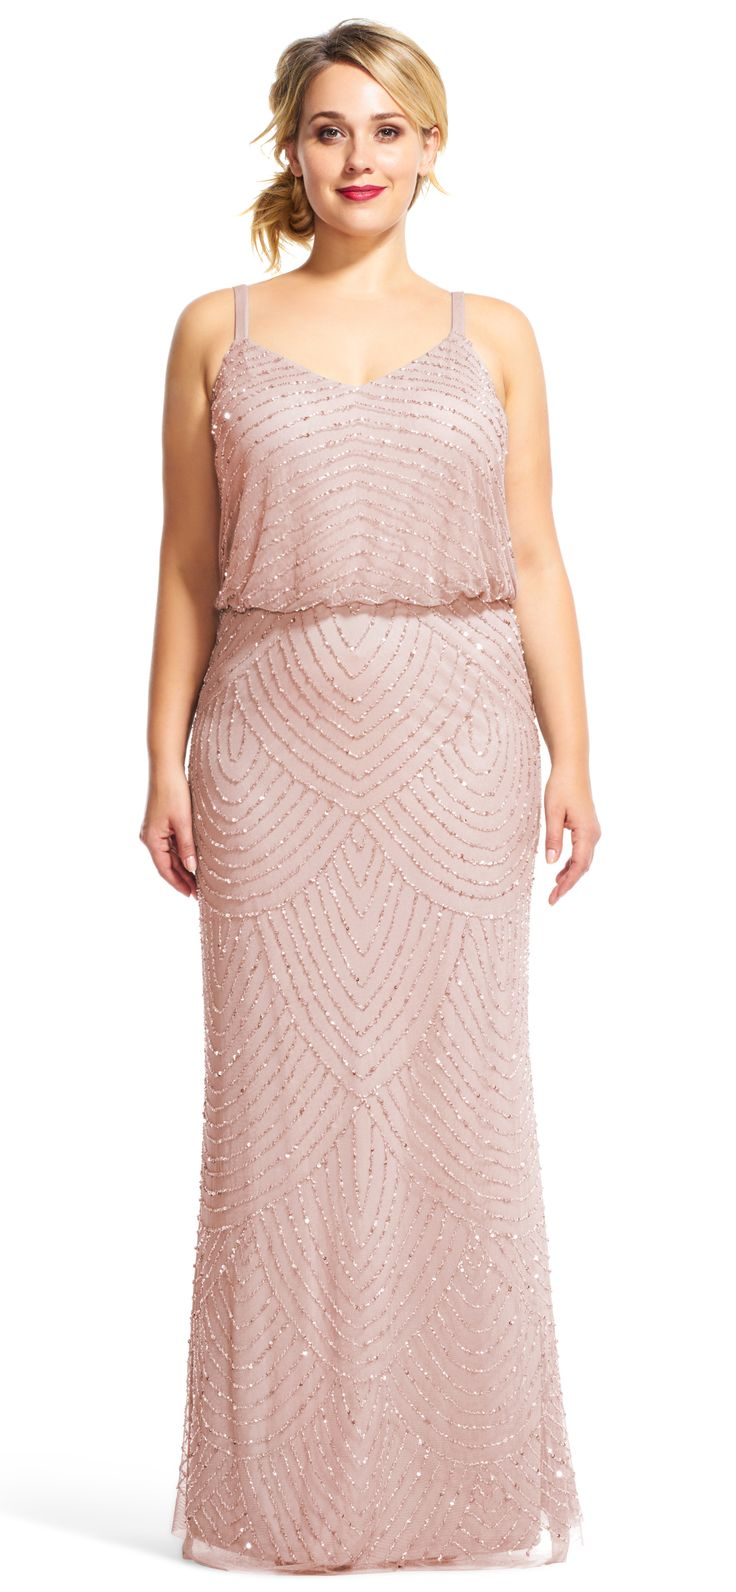 An art deco bridesmaid dress that's size inclusive! | Art Deco Beaded Blouson Gown | Adrianna Papell | Plus Size Bridesmaids Dresses | Extended Size Bridesmaid Dress | Wedding Party Fashion | Bridal Party Style | Gatsby Wedding | #bridesmaids #plussizebridesmaid